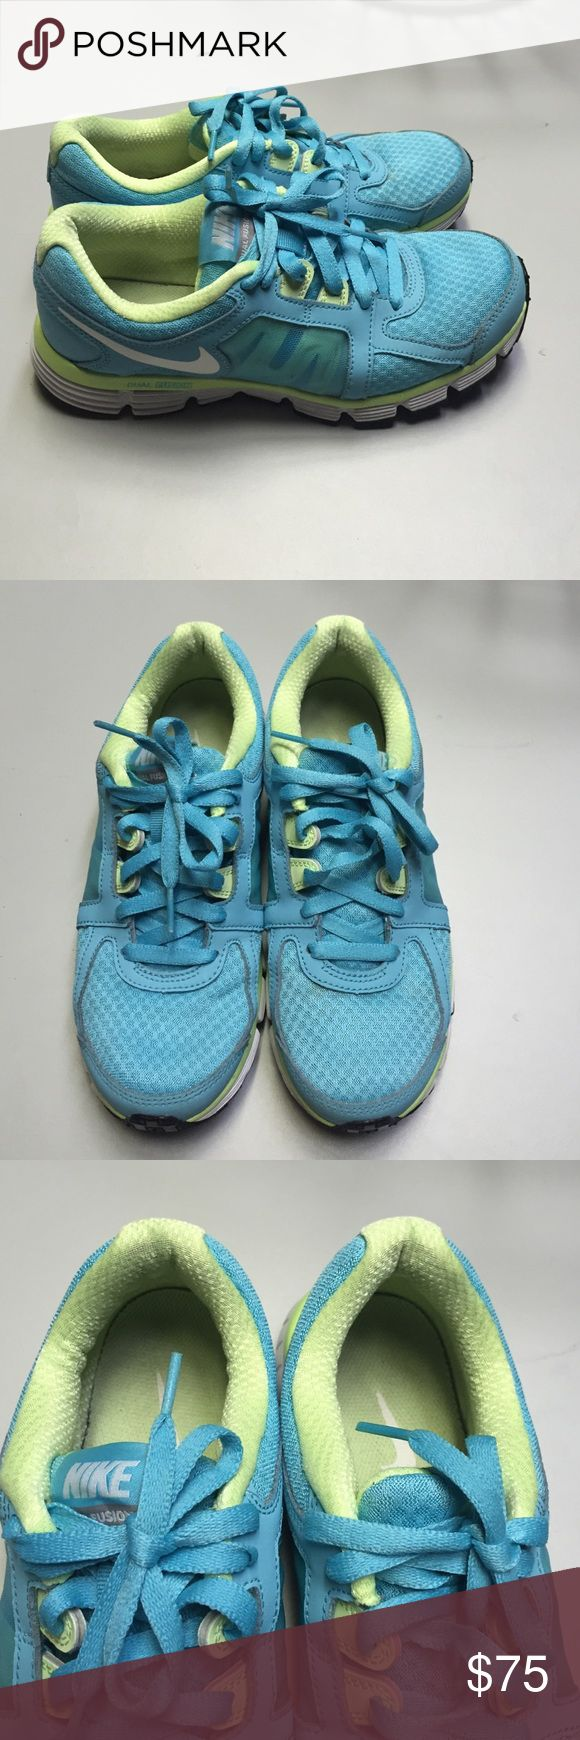 Nike Tiffany blue sneaker Worn few times,already washed ,no strains and everywhere in a good condition,purchased at the shoes sport shop. Nike Shoes Sneakers